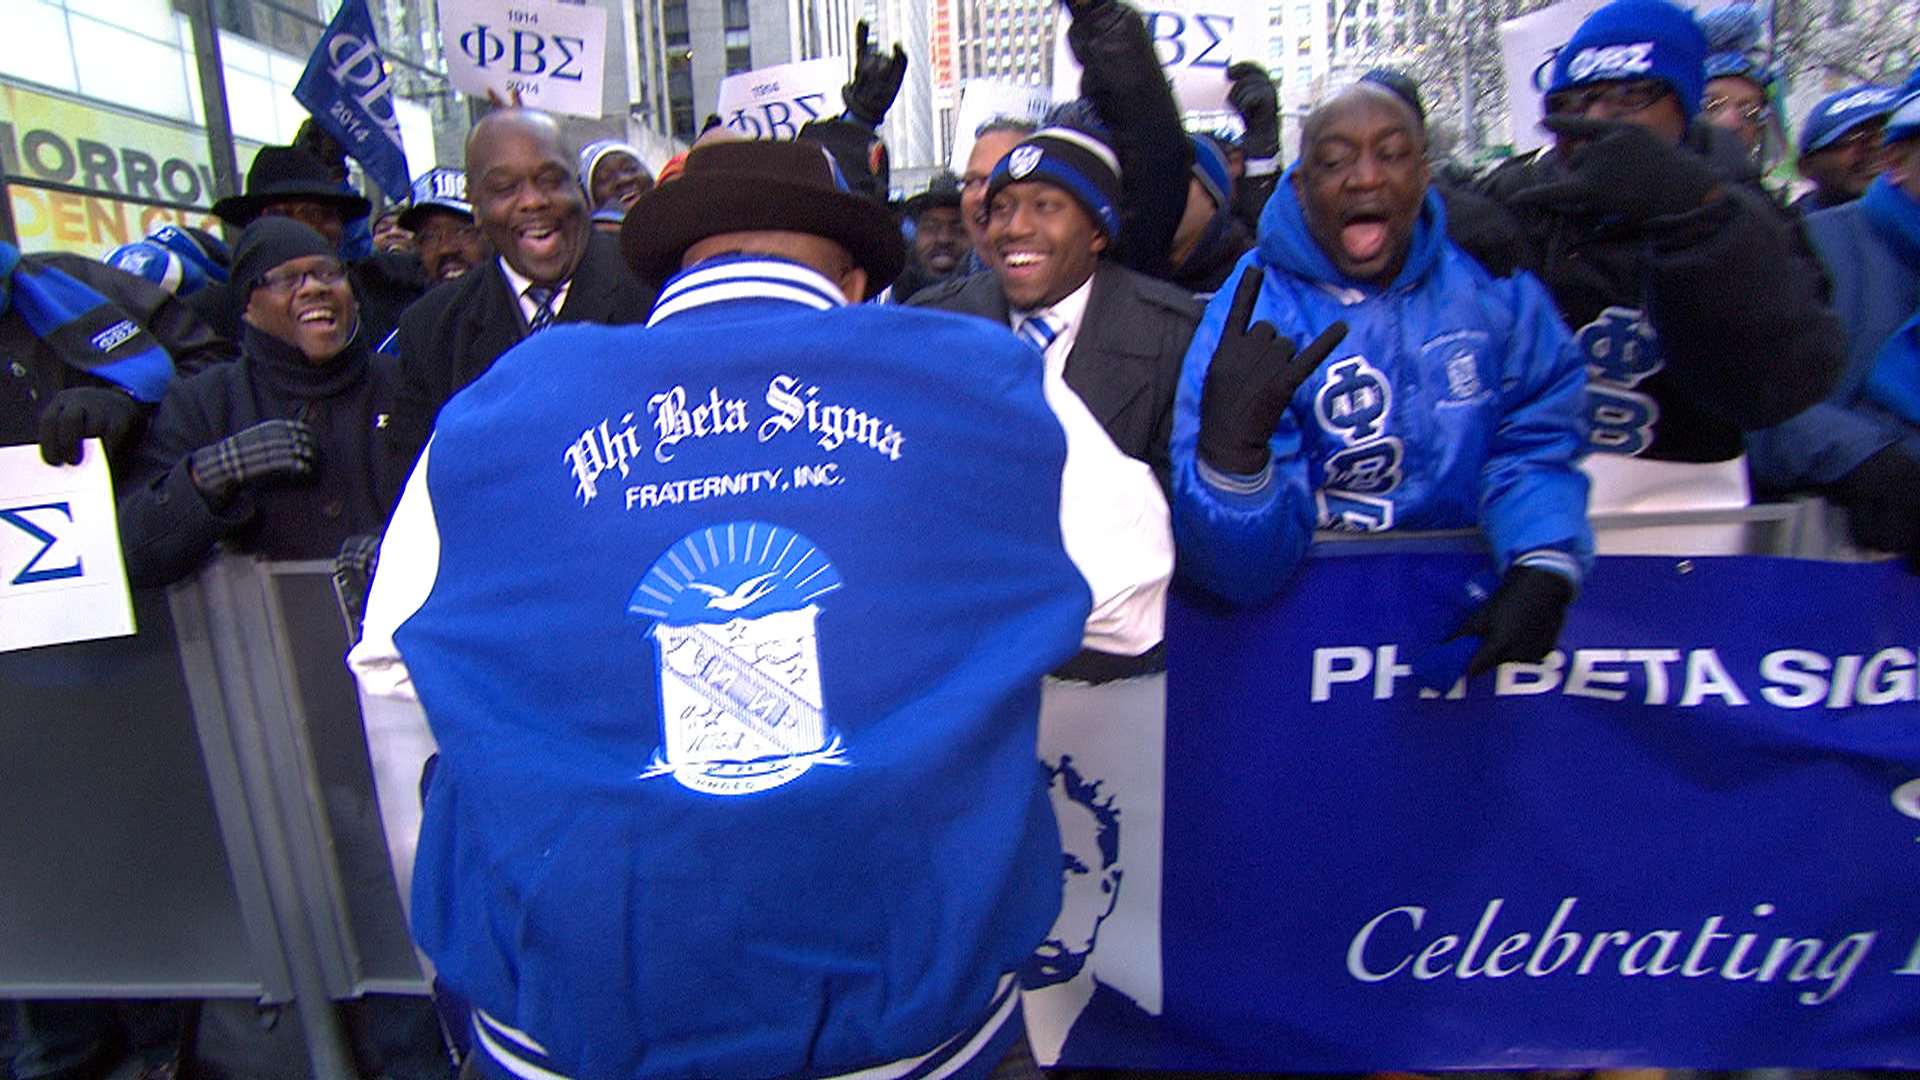 Al Roker gets special jacket from fraternity - TODAY.com